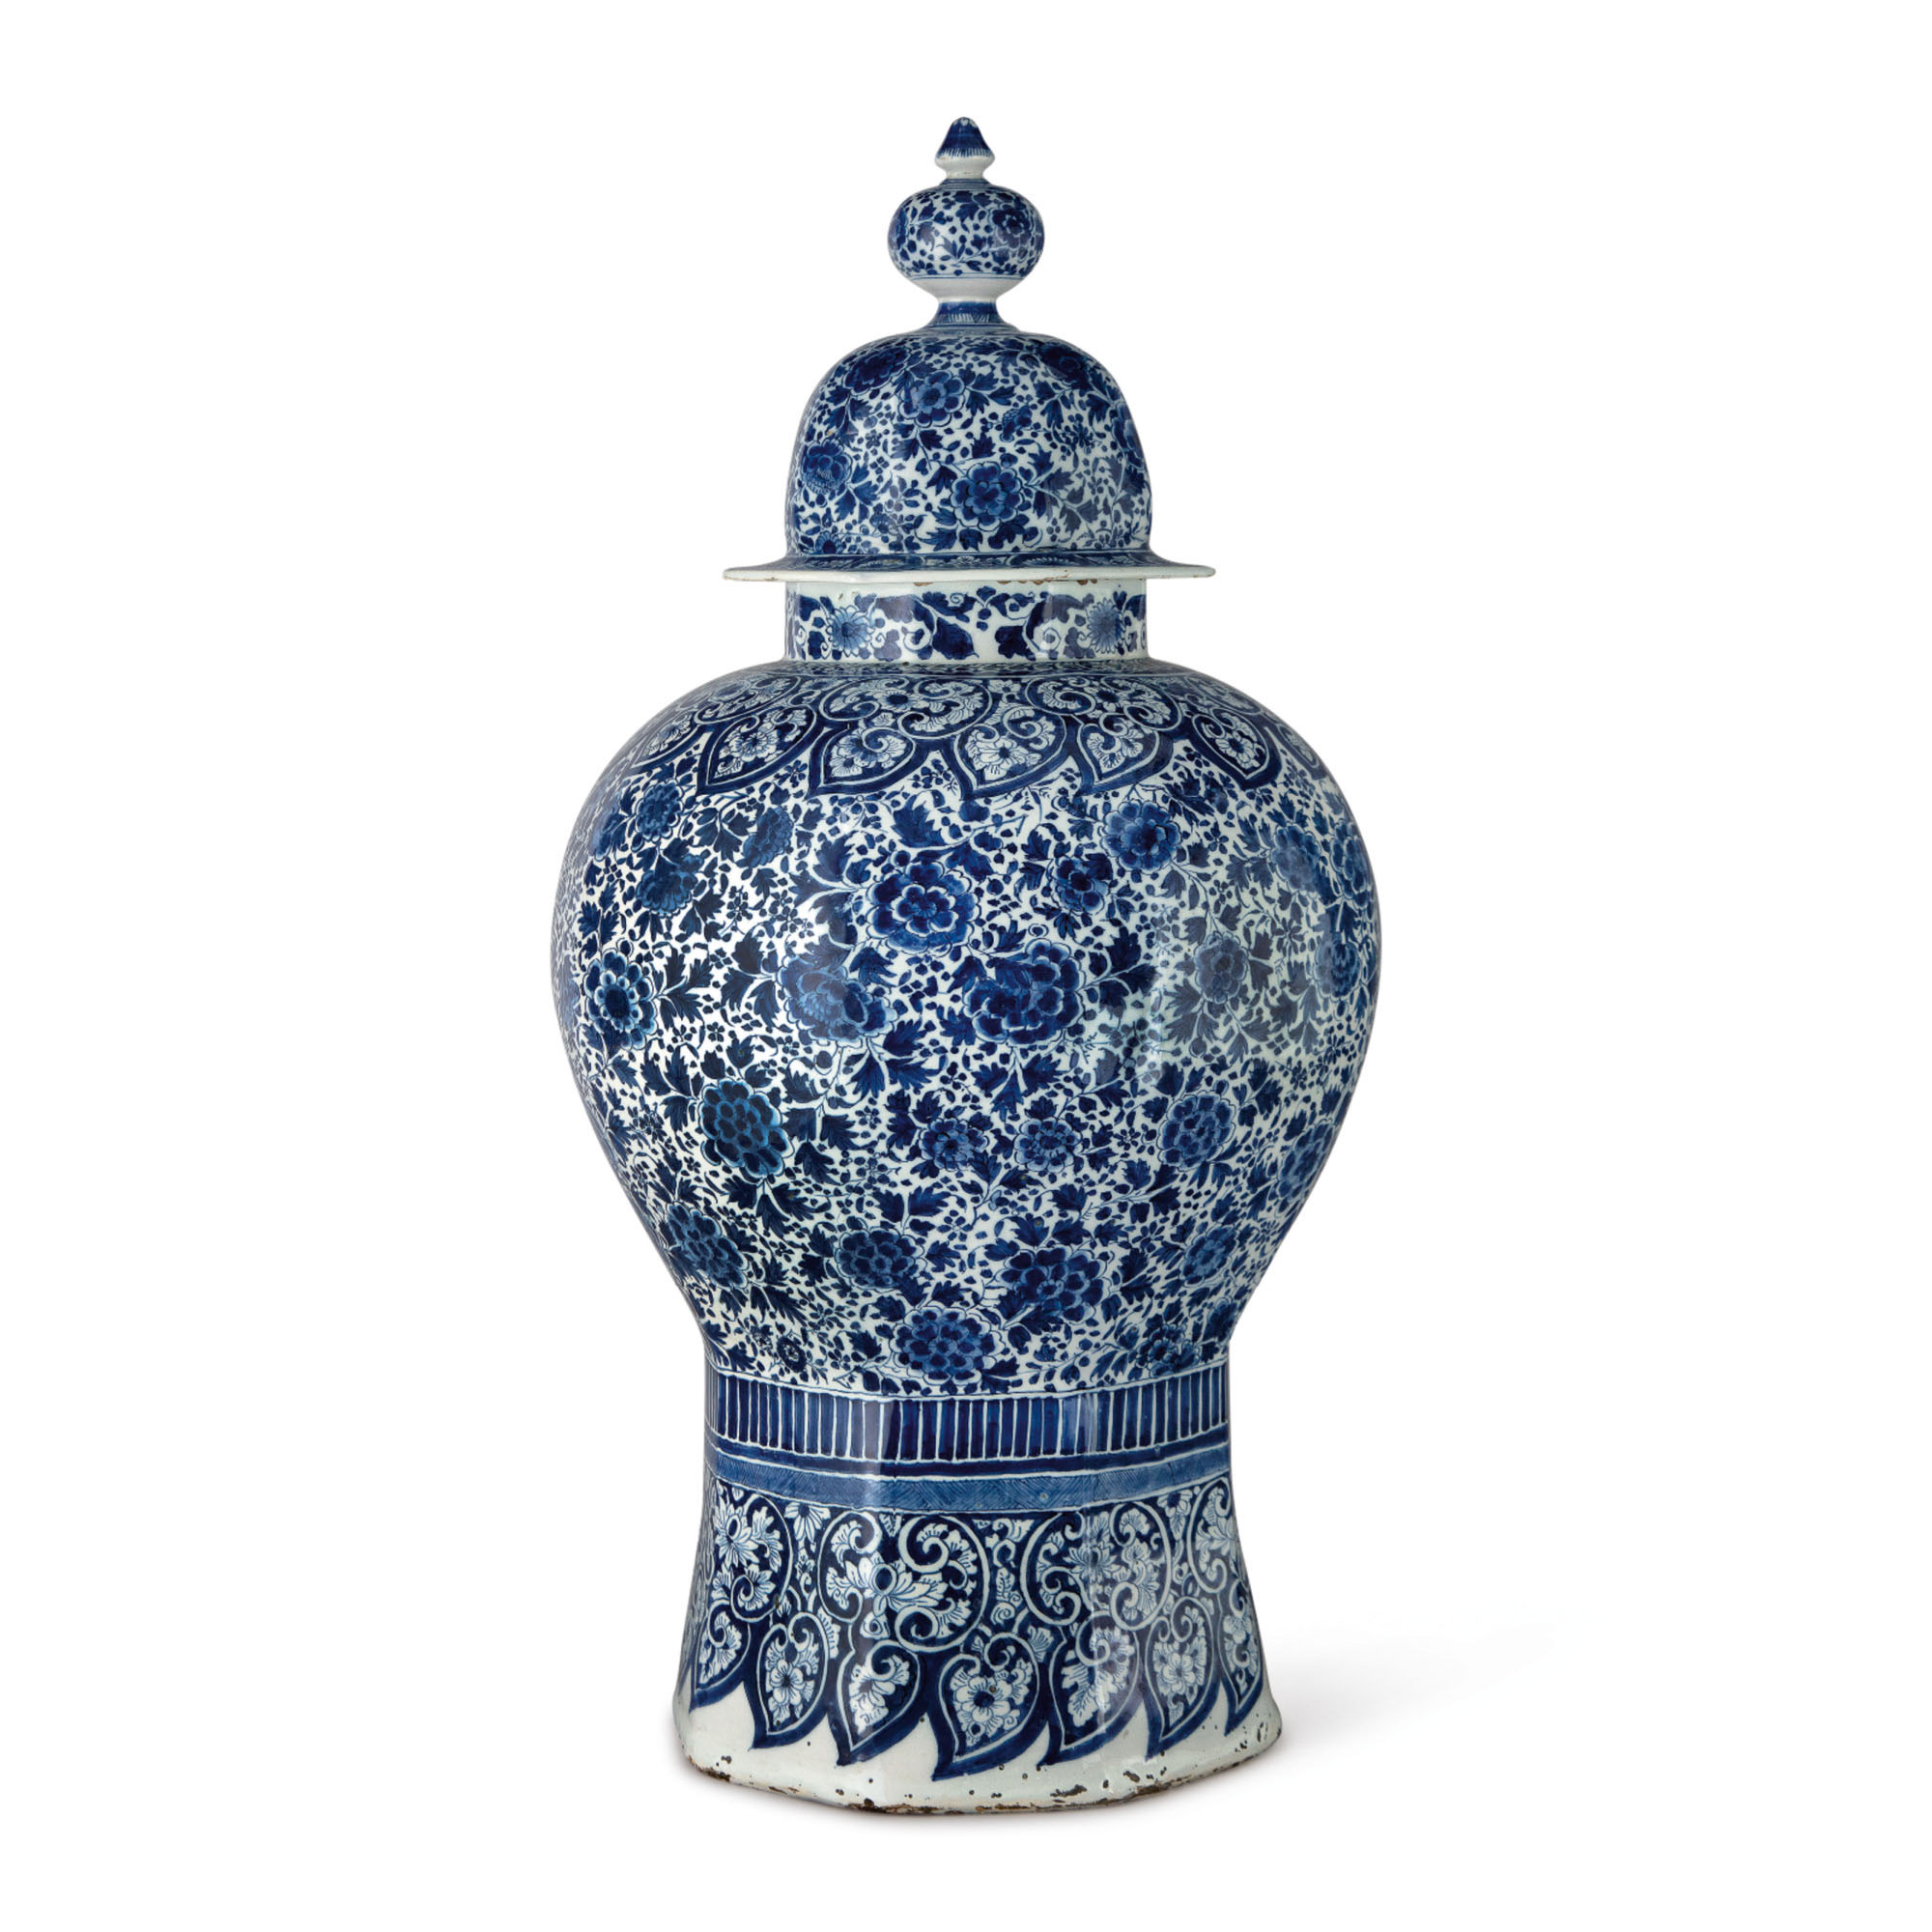 A DUTCH DELFT BLUE AND WHITE LARGE OCTAGONAL BALUSTER VASE AND COVER, CIRCA 1700